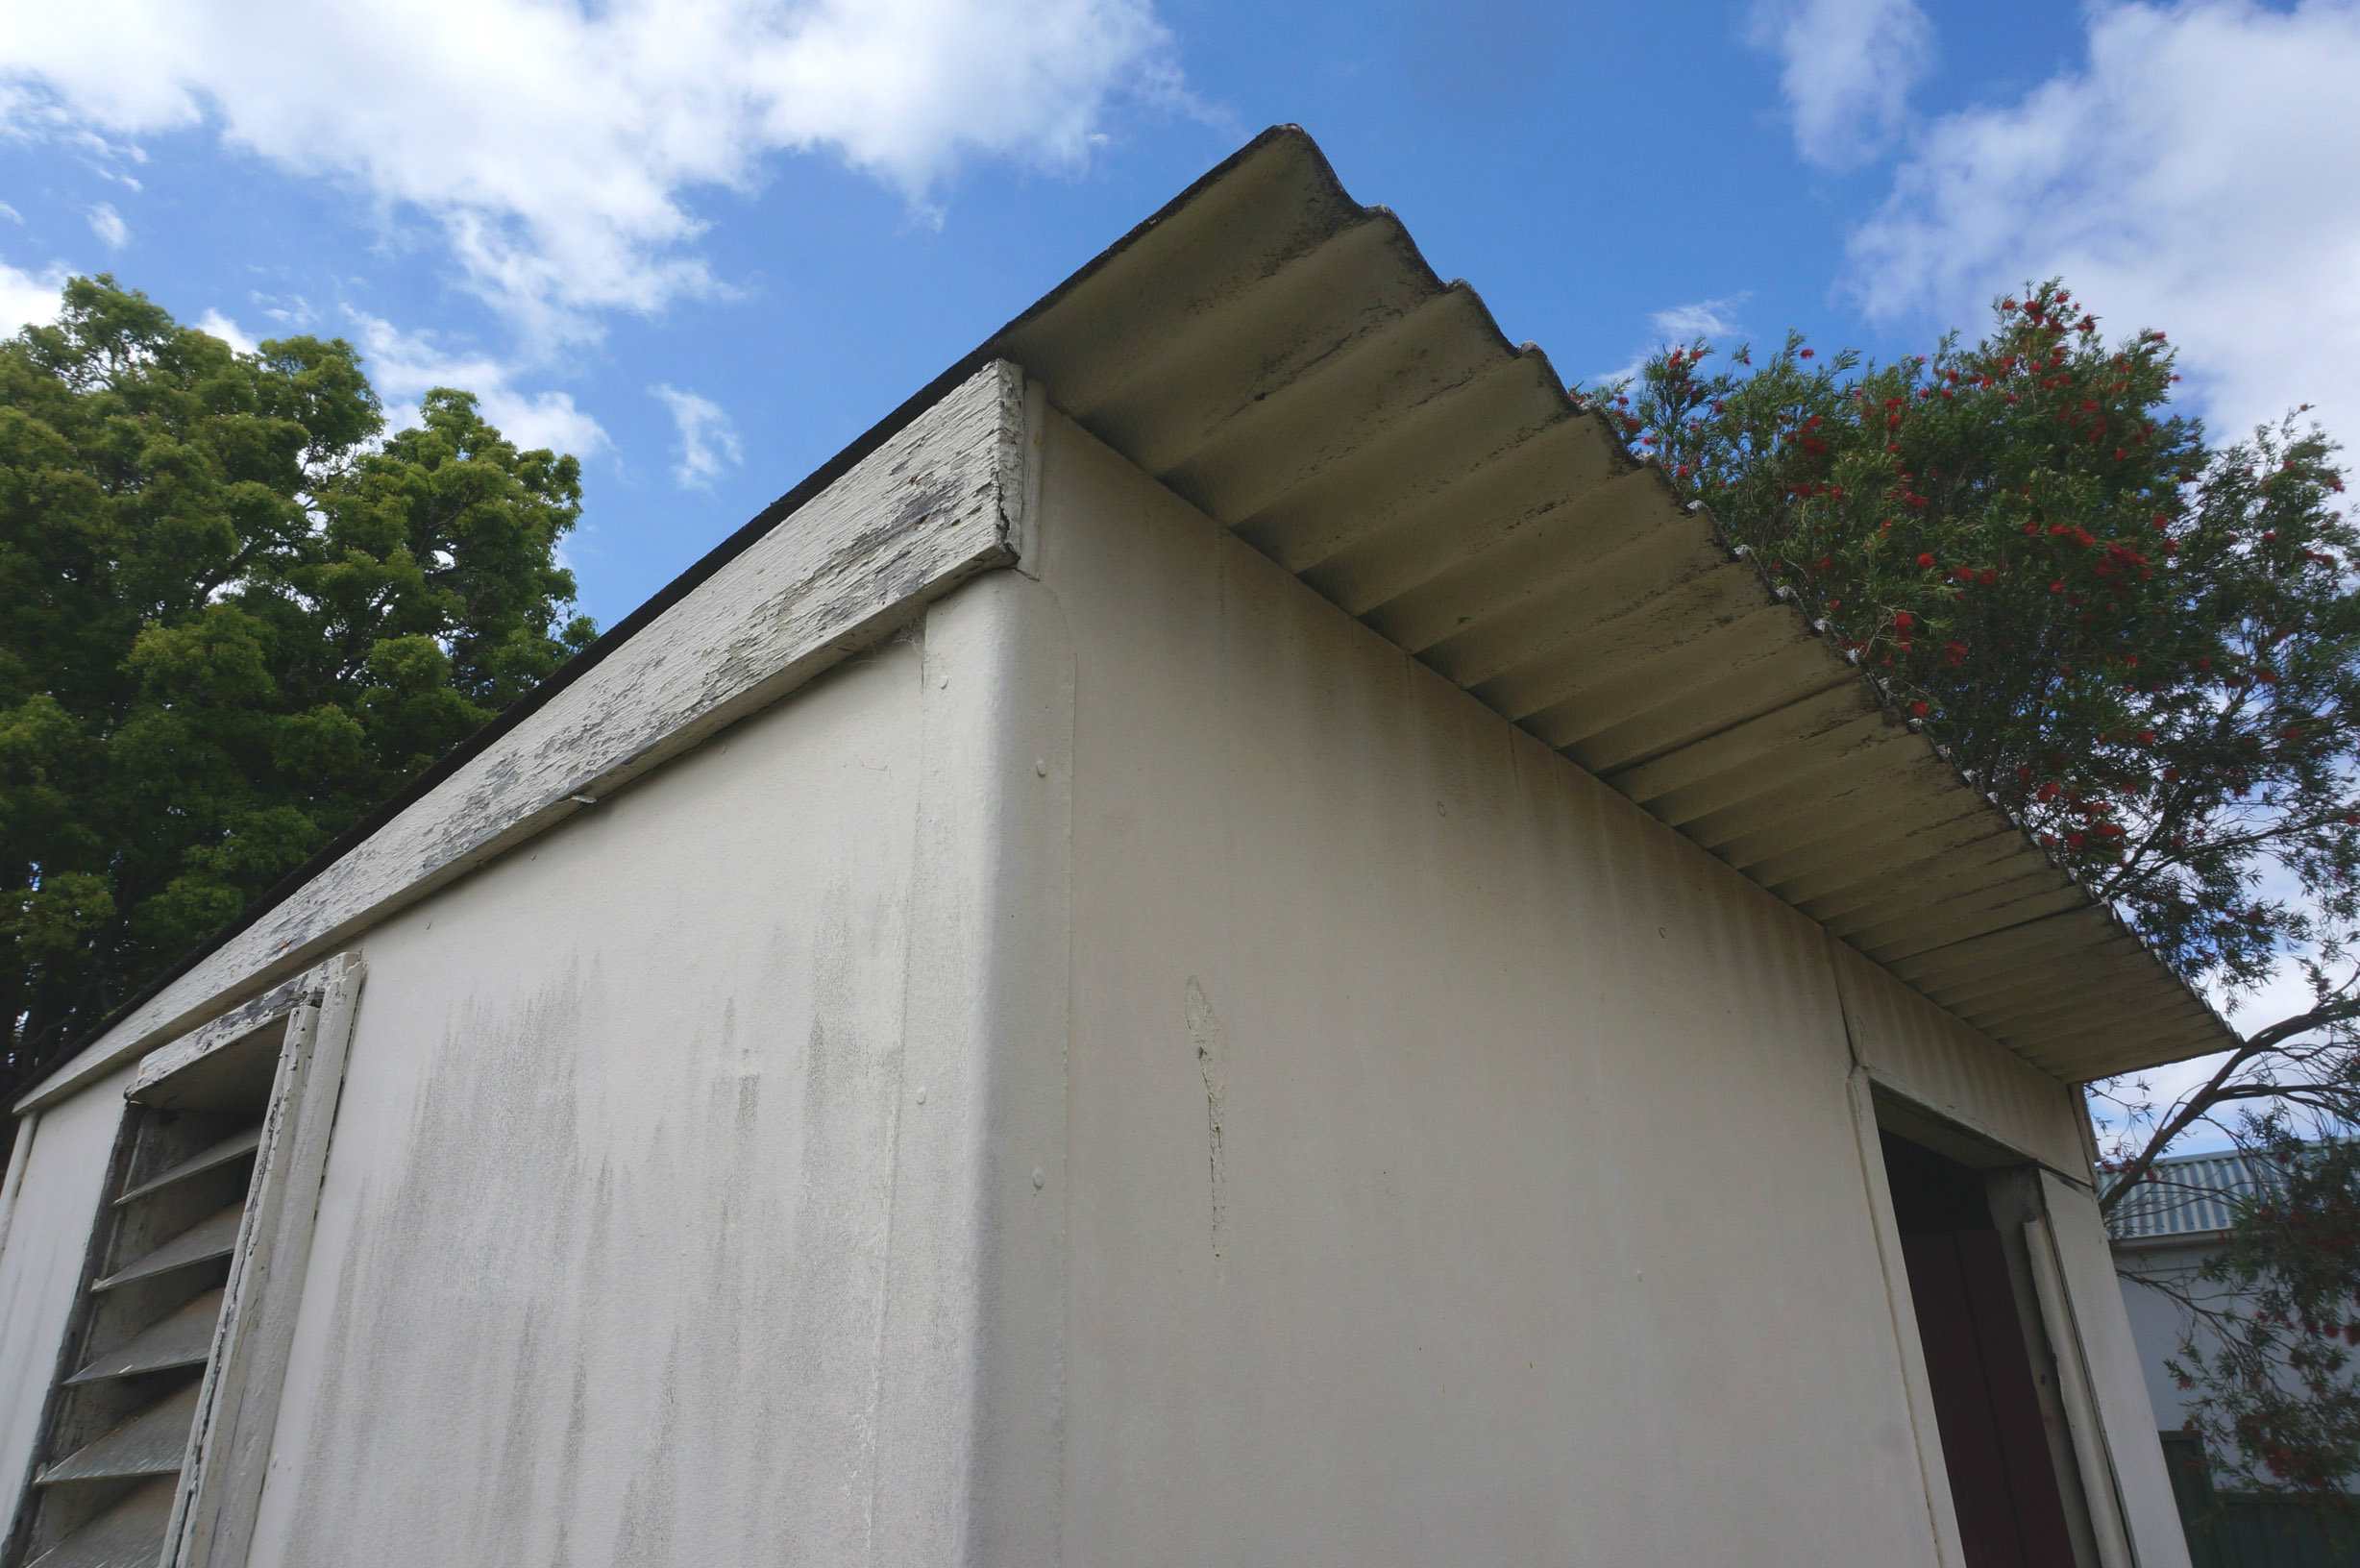 Old sheds like this often have roofs made out of 'Super Six', a product that contains asbestos.